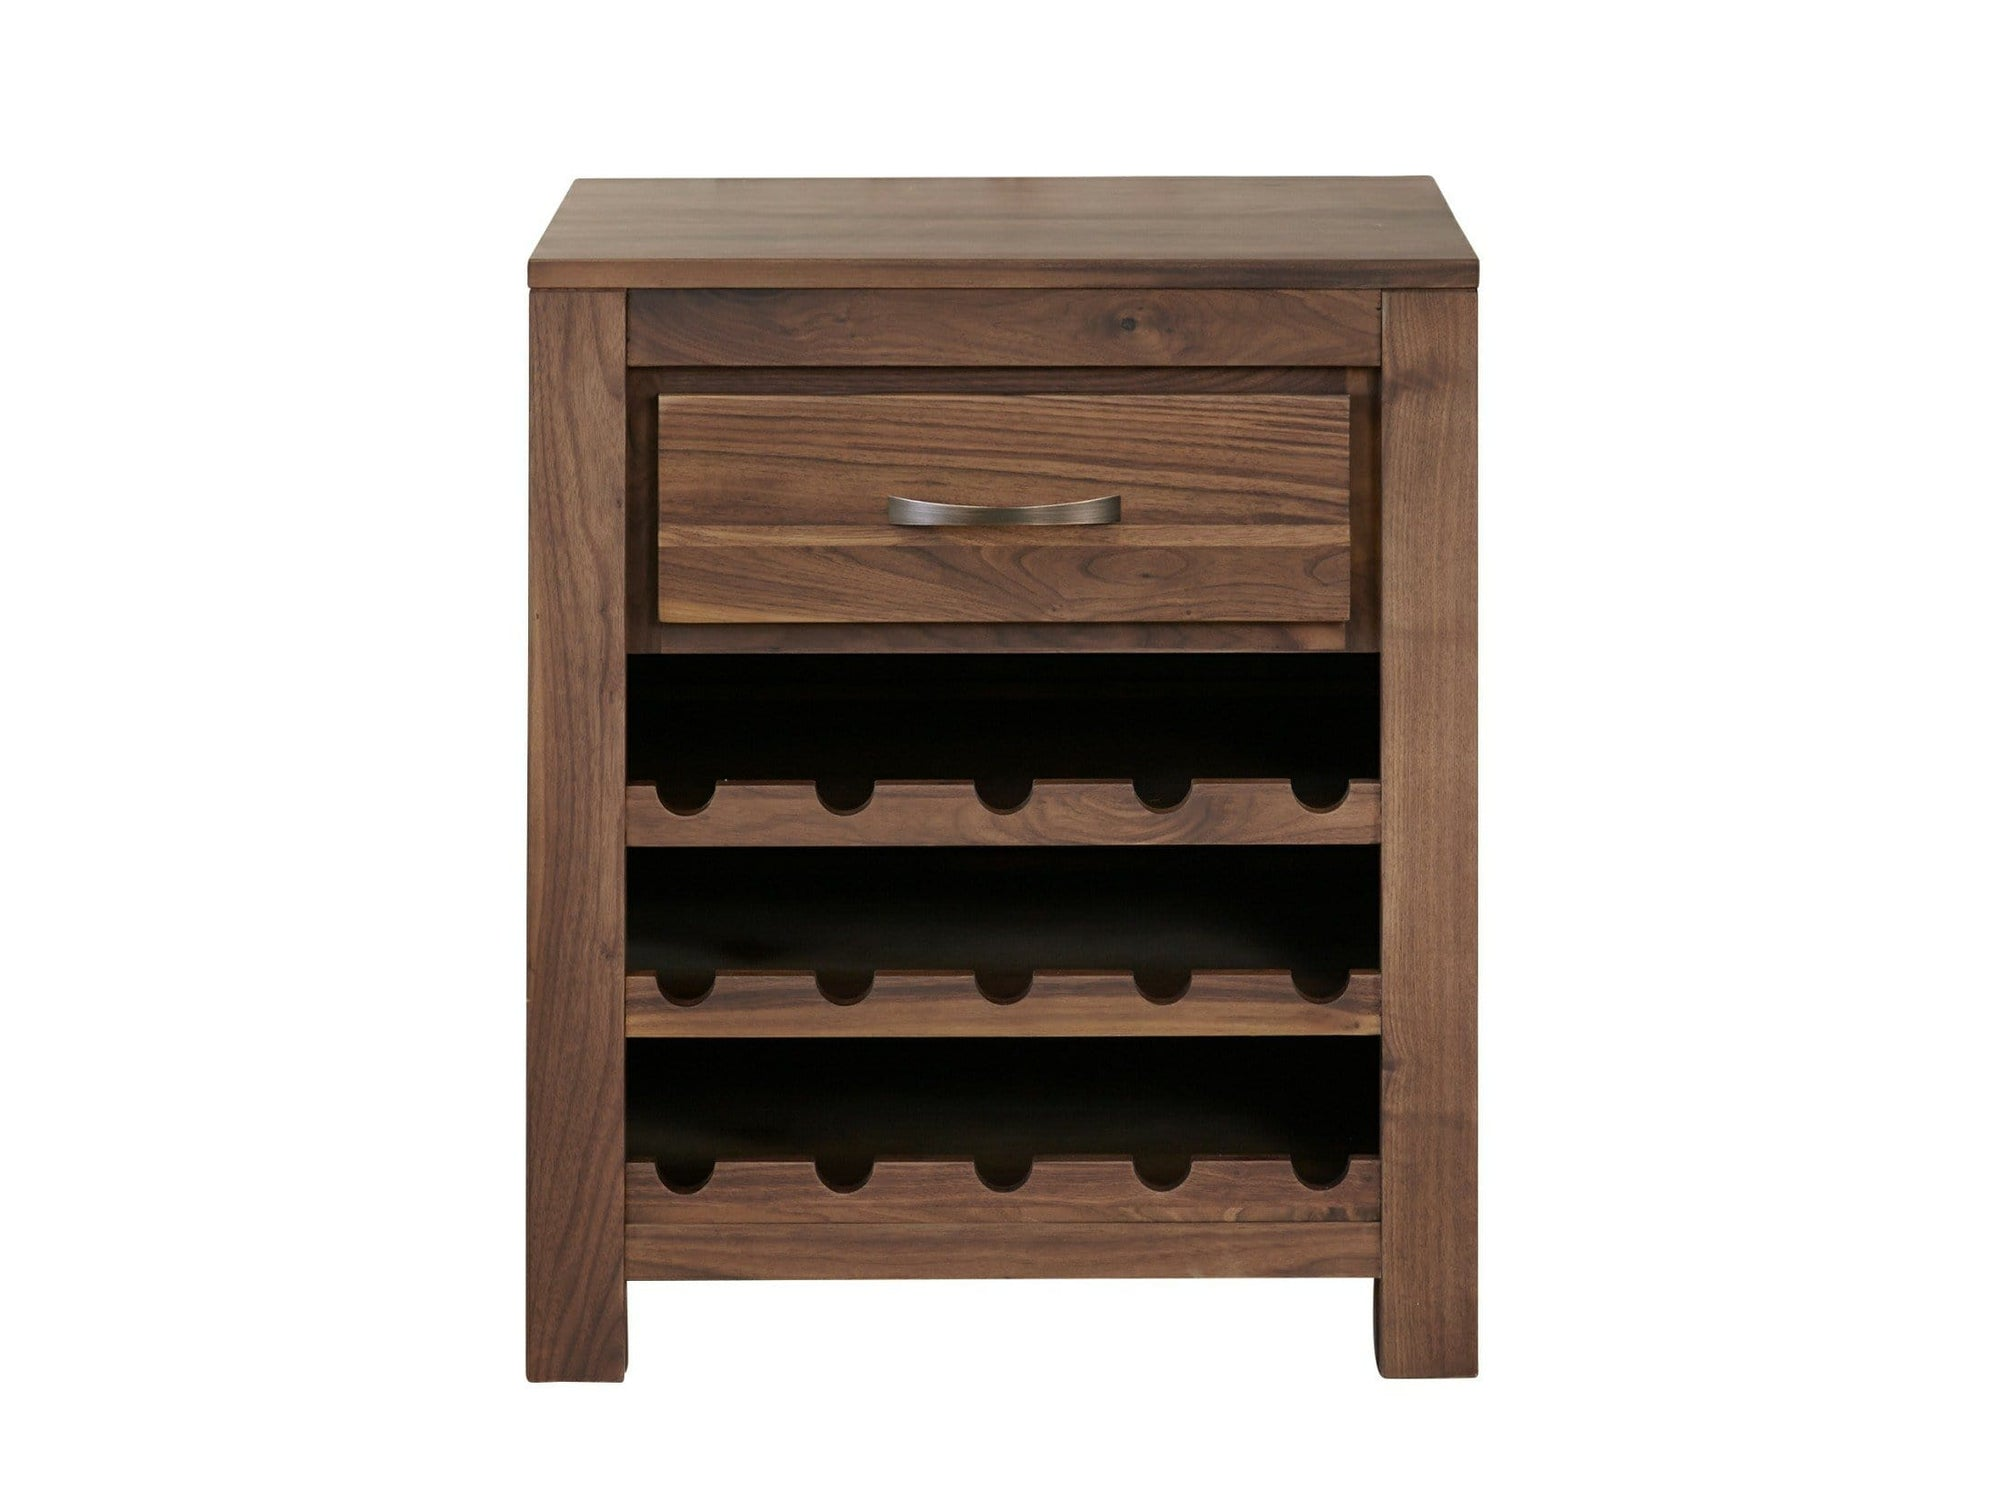 Walnut wine rack with capacity for 15 bottles, plus small storage drawer at top of unit